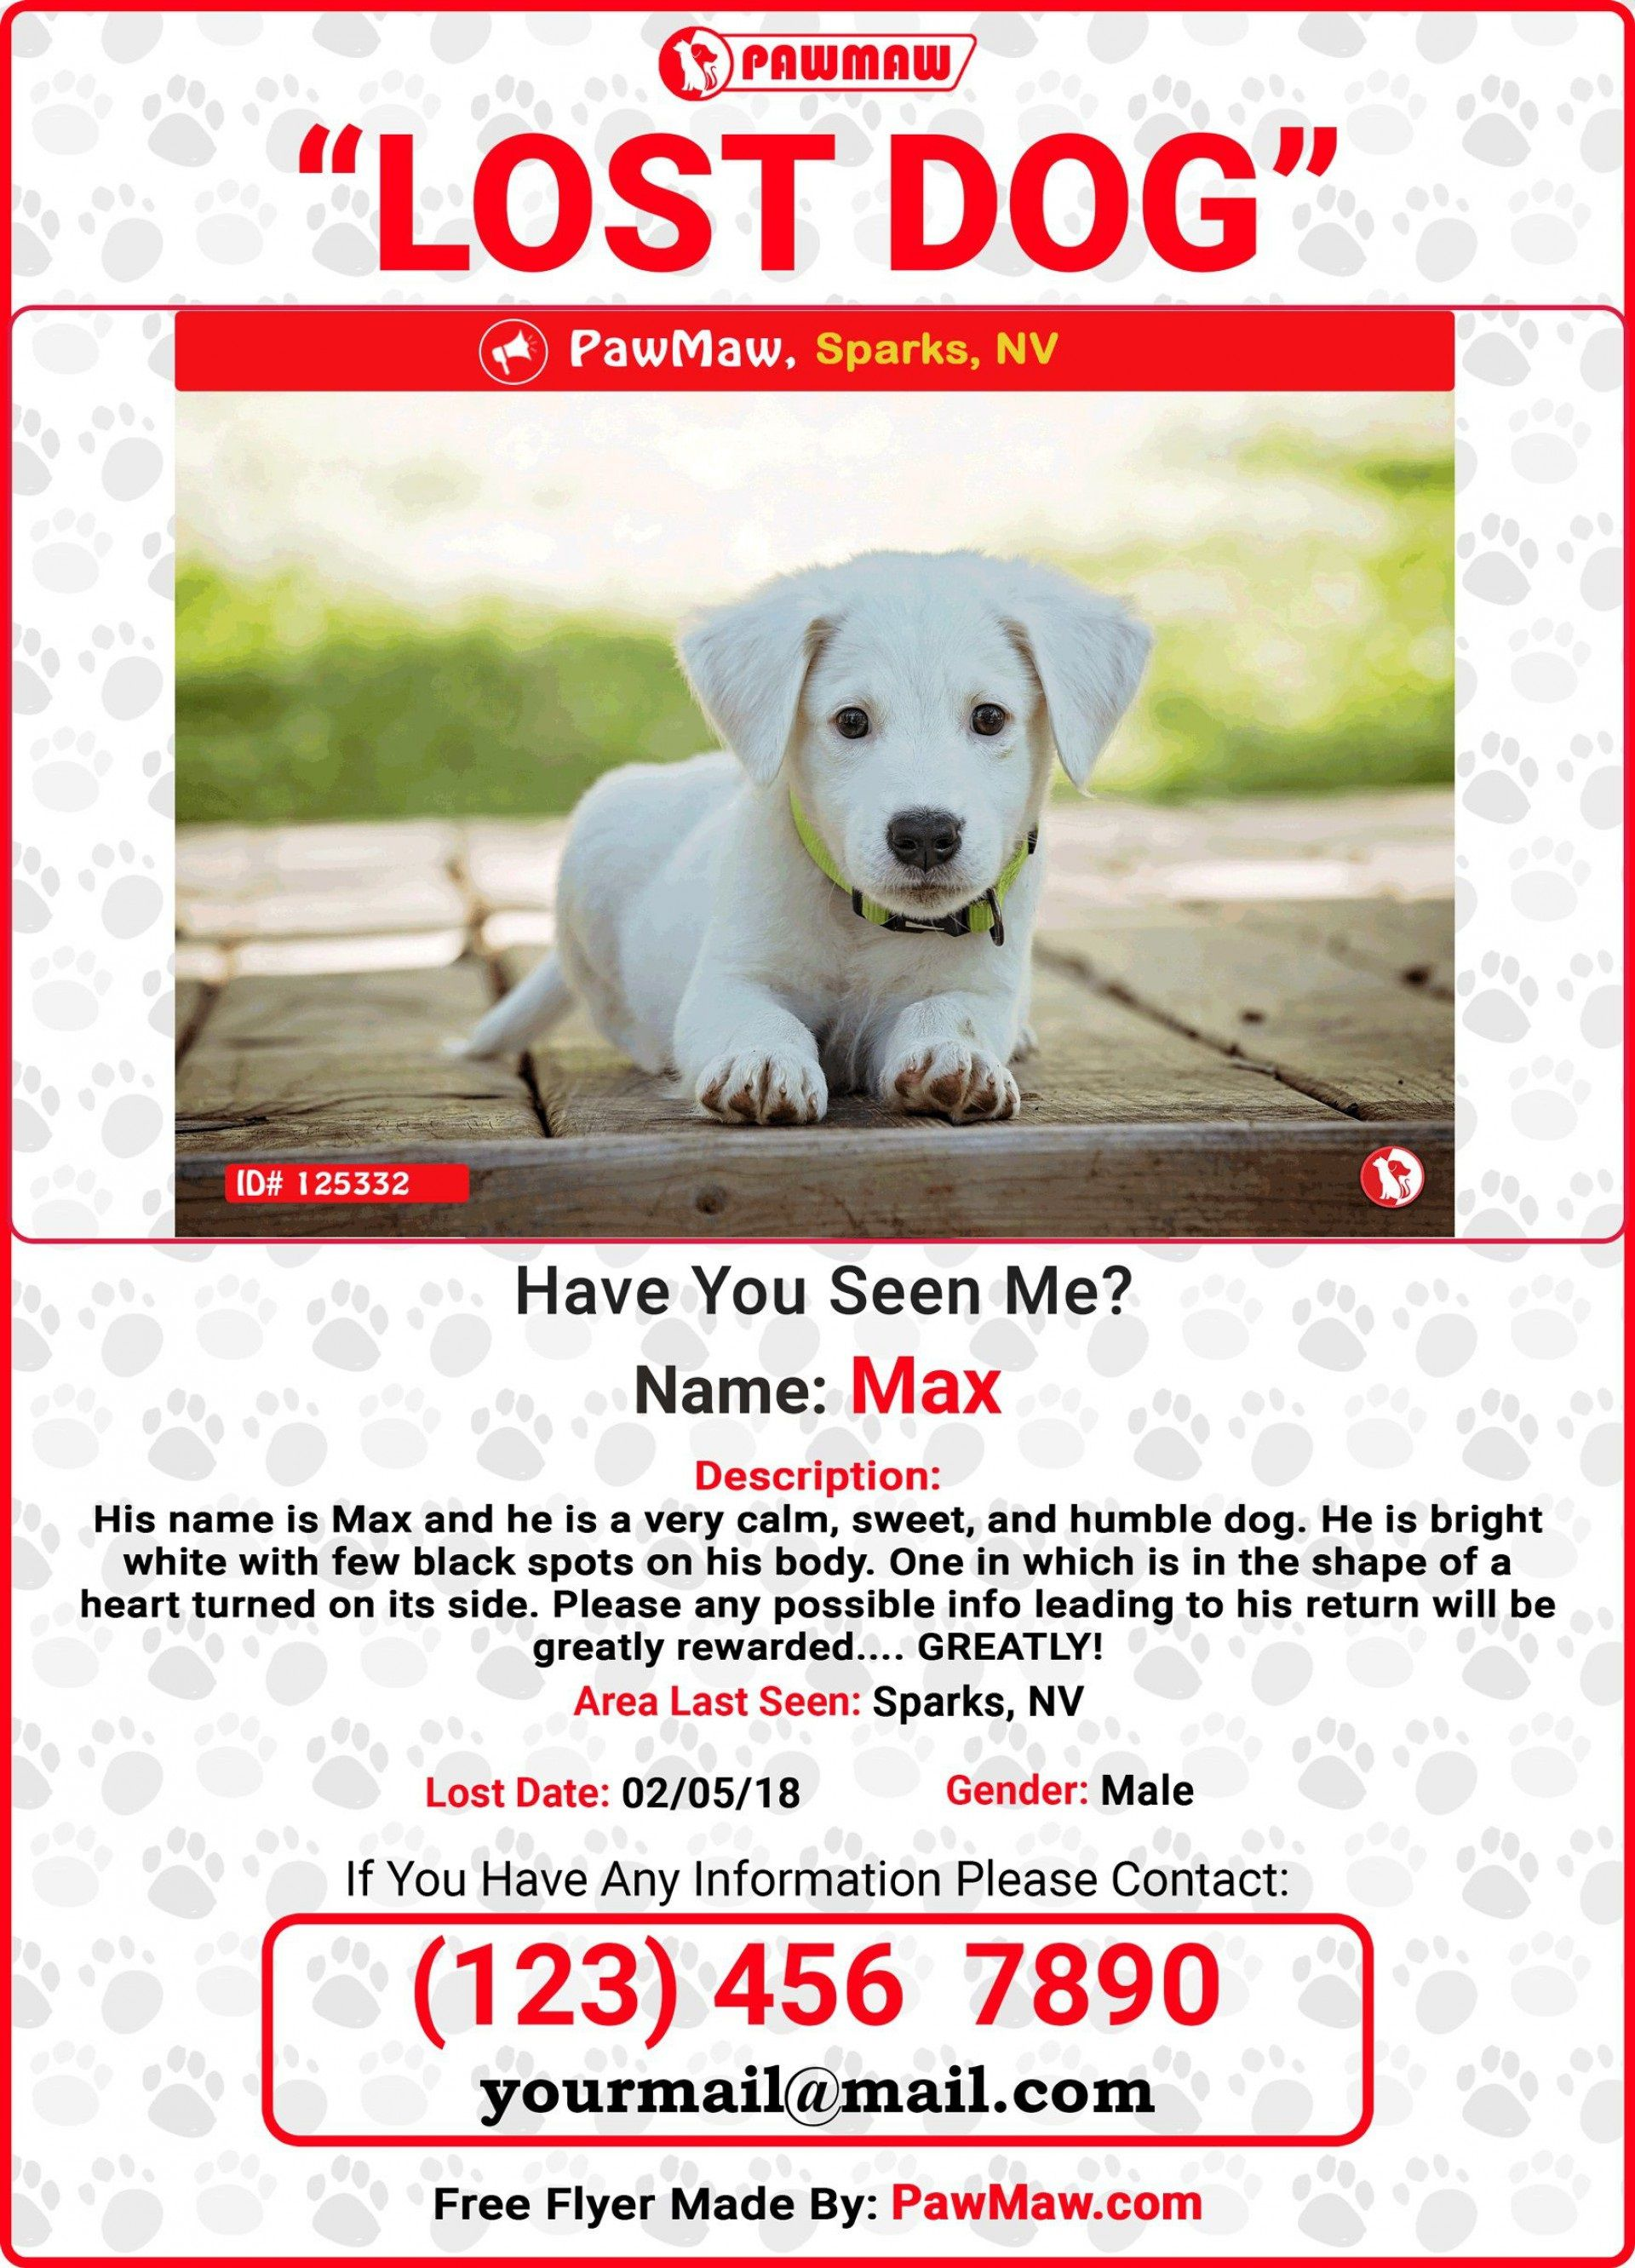 009 Unique Missing Dog Flyer Template Sample  Lost PosterFull